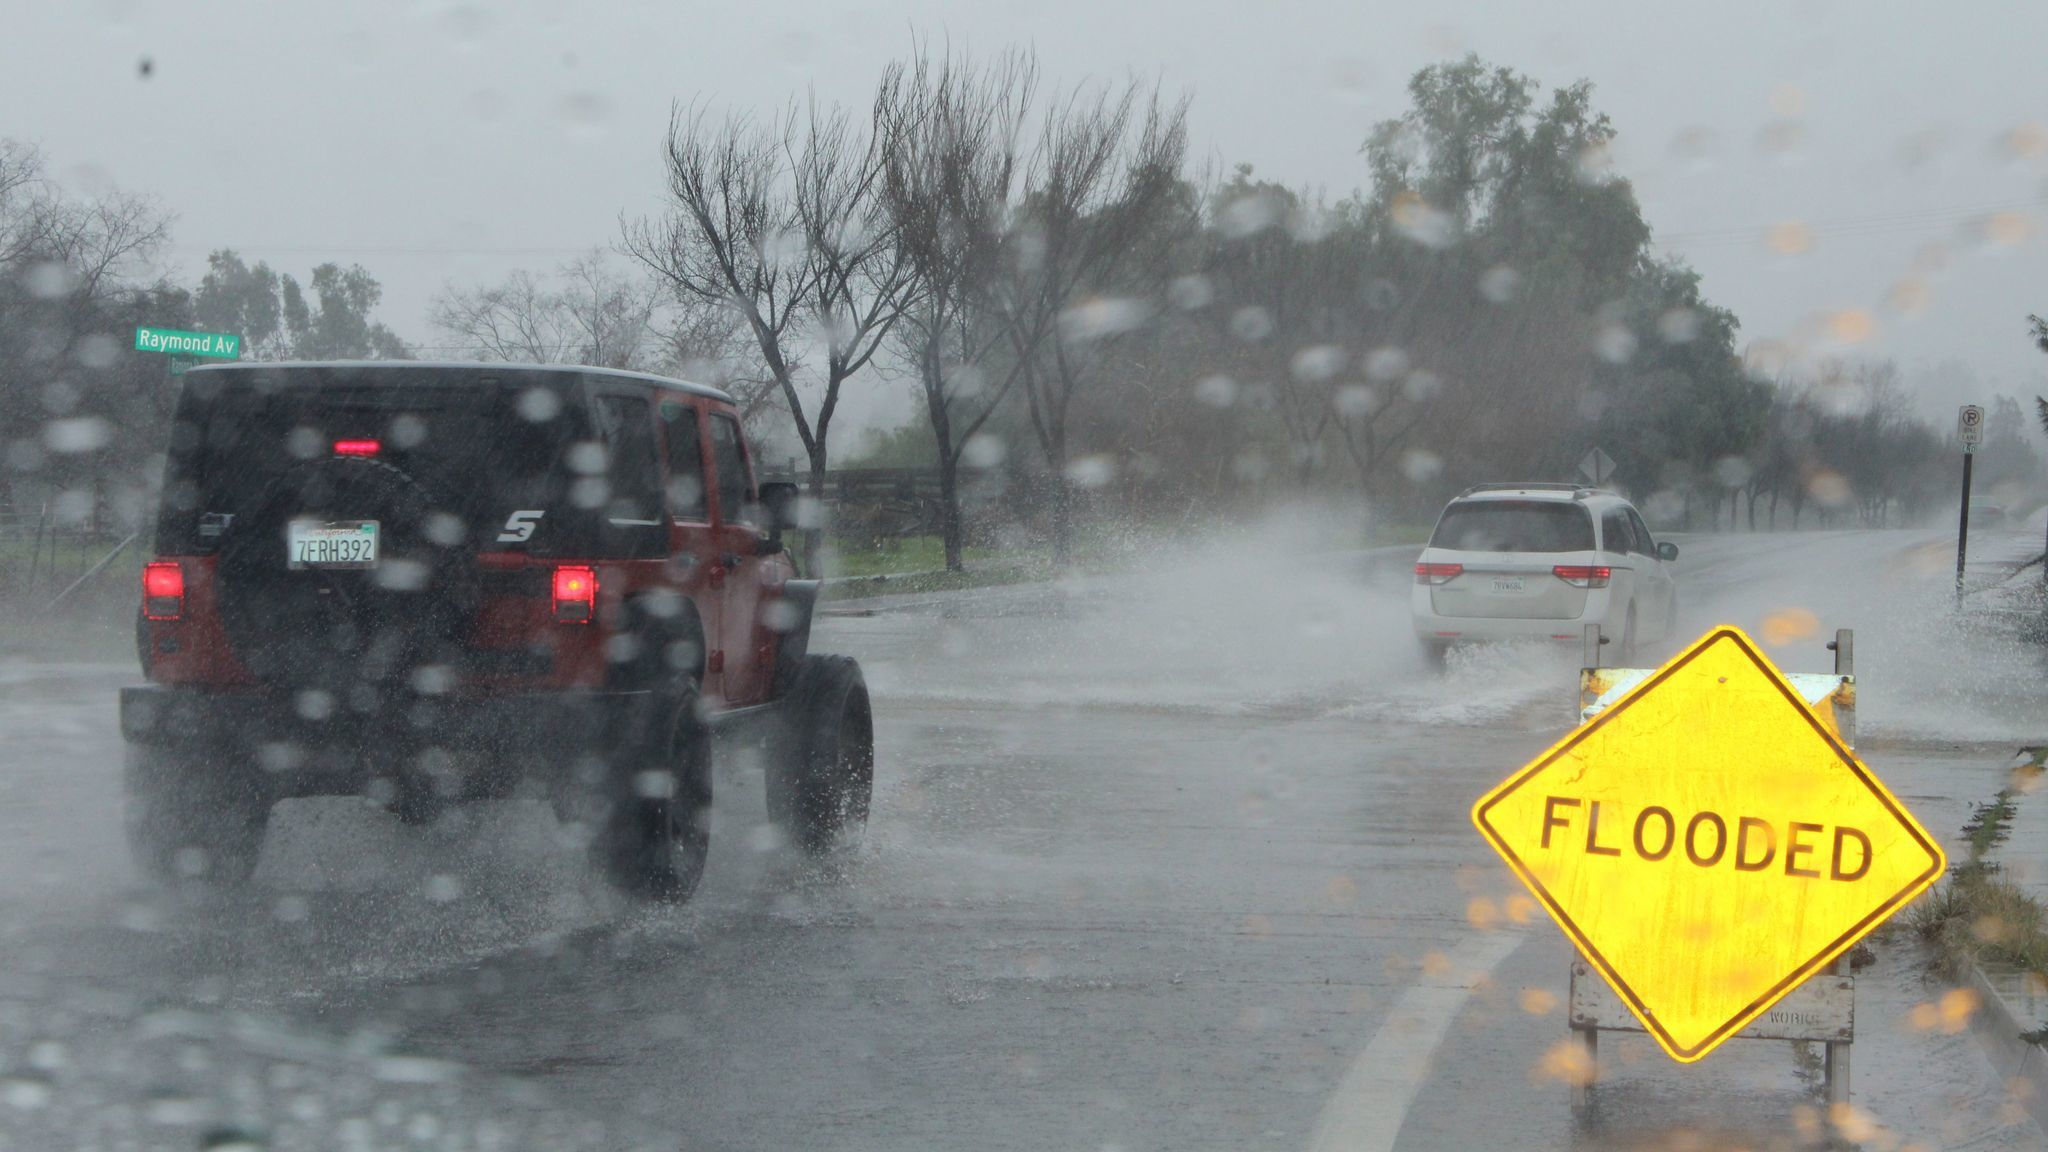 Ramona Street is among areas that experienced flooding during heavy rains Friday.